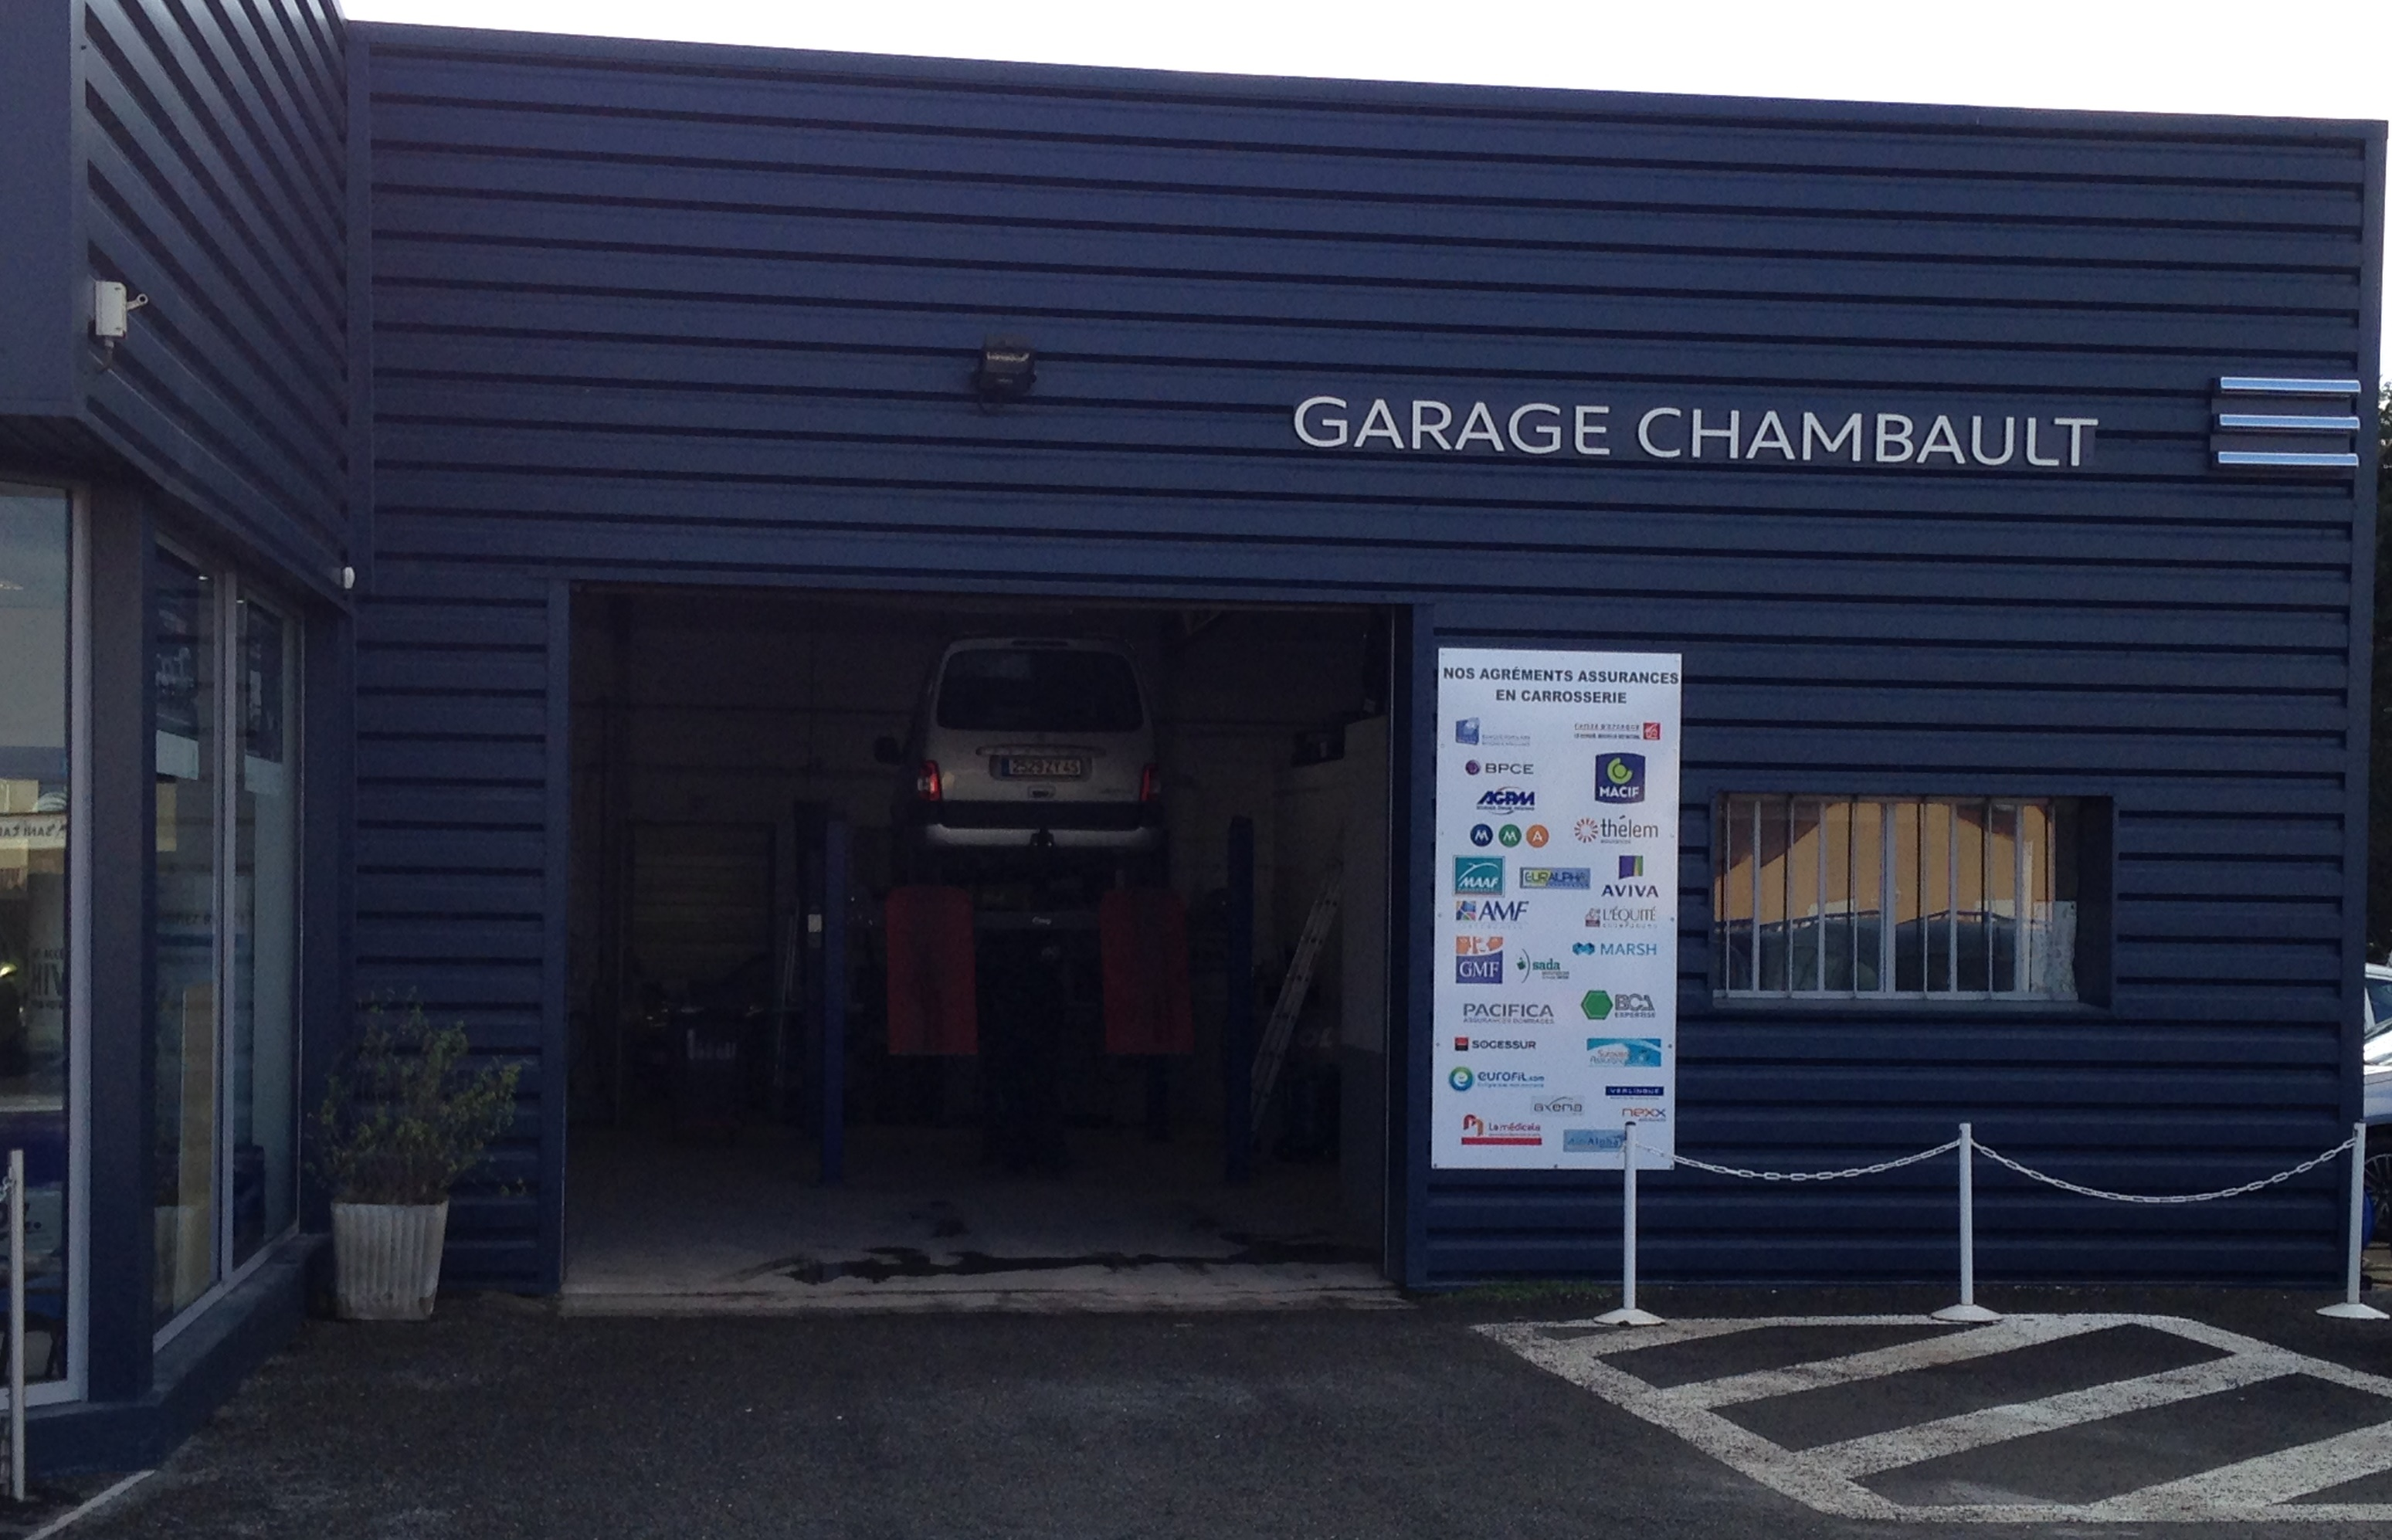 Pr sentation de la soci t garage chambault for Garage peugeot vallauris